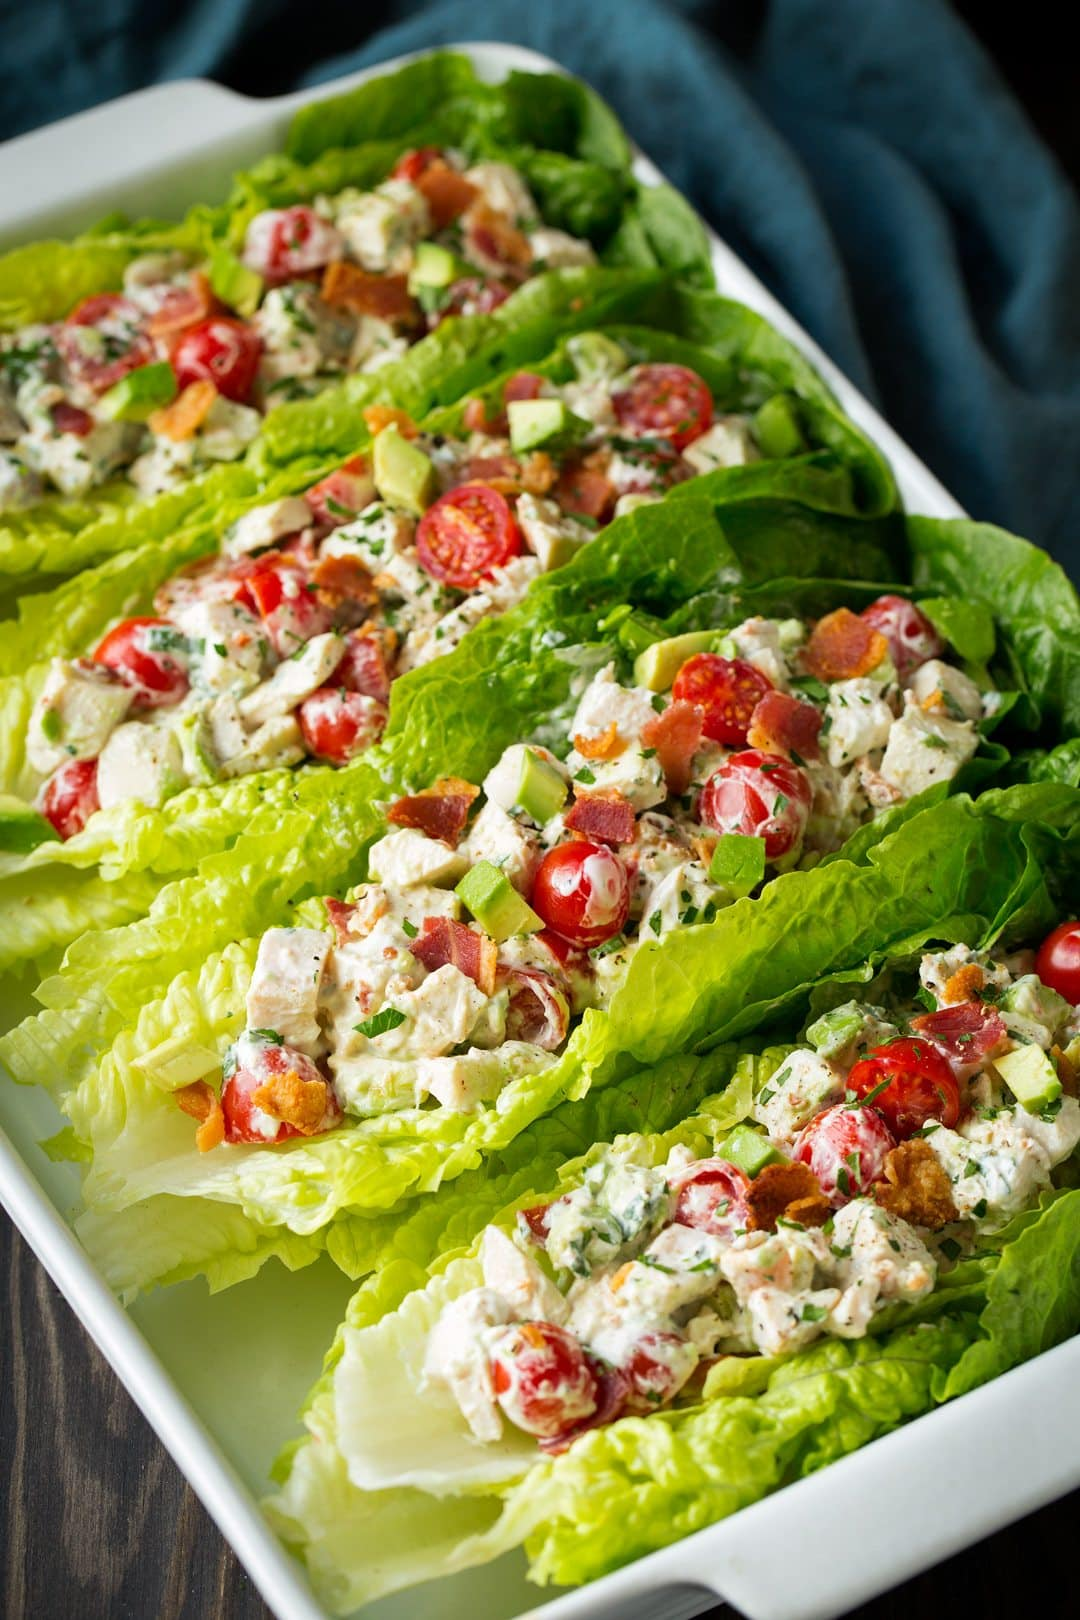 BLTA Chicken Salad Lettuce Wraps - Cooking Classy